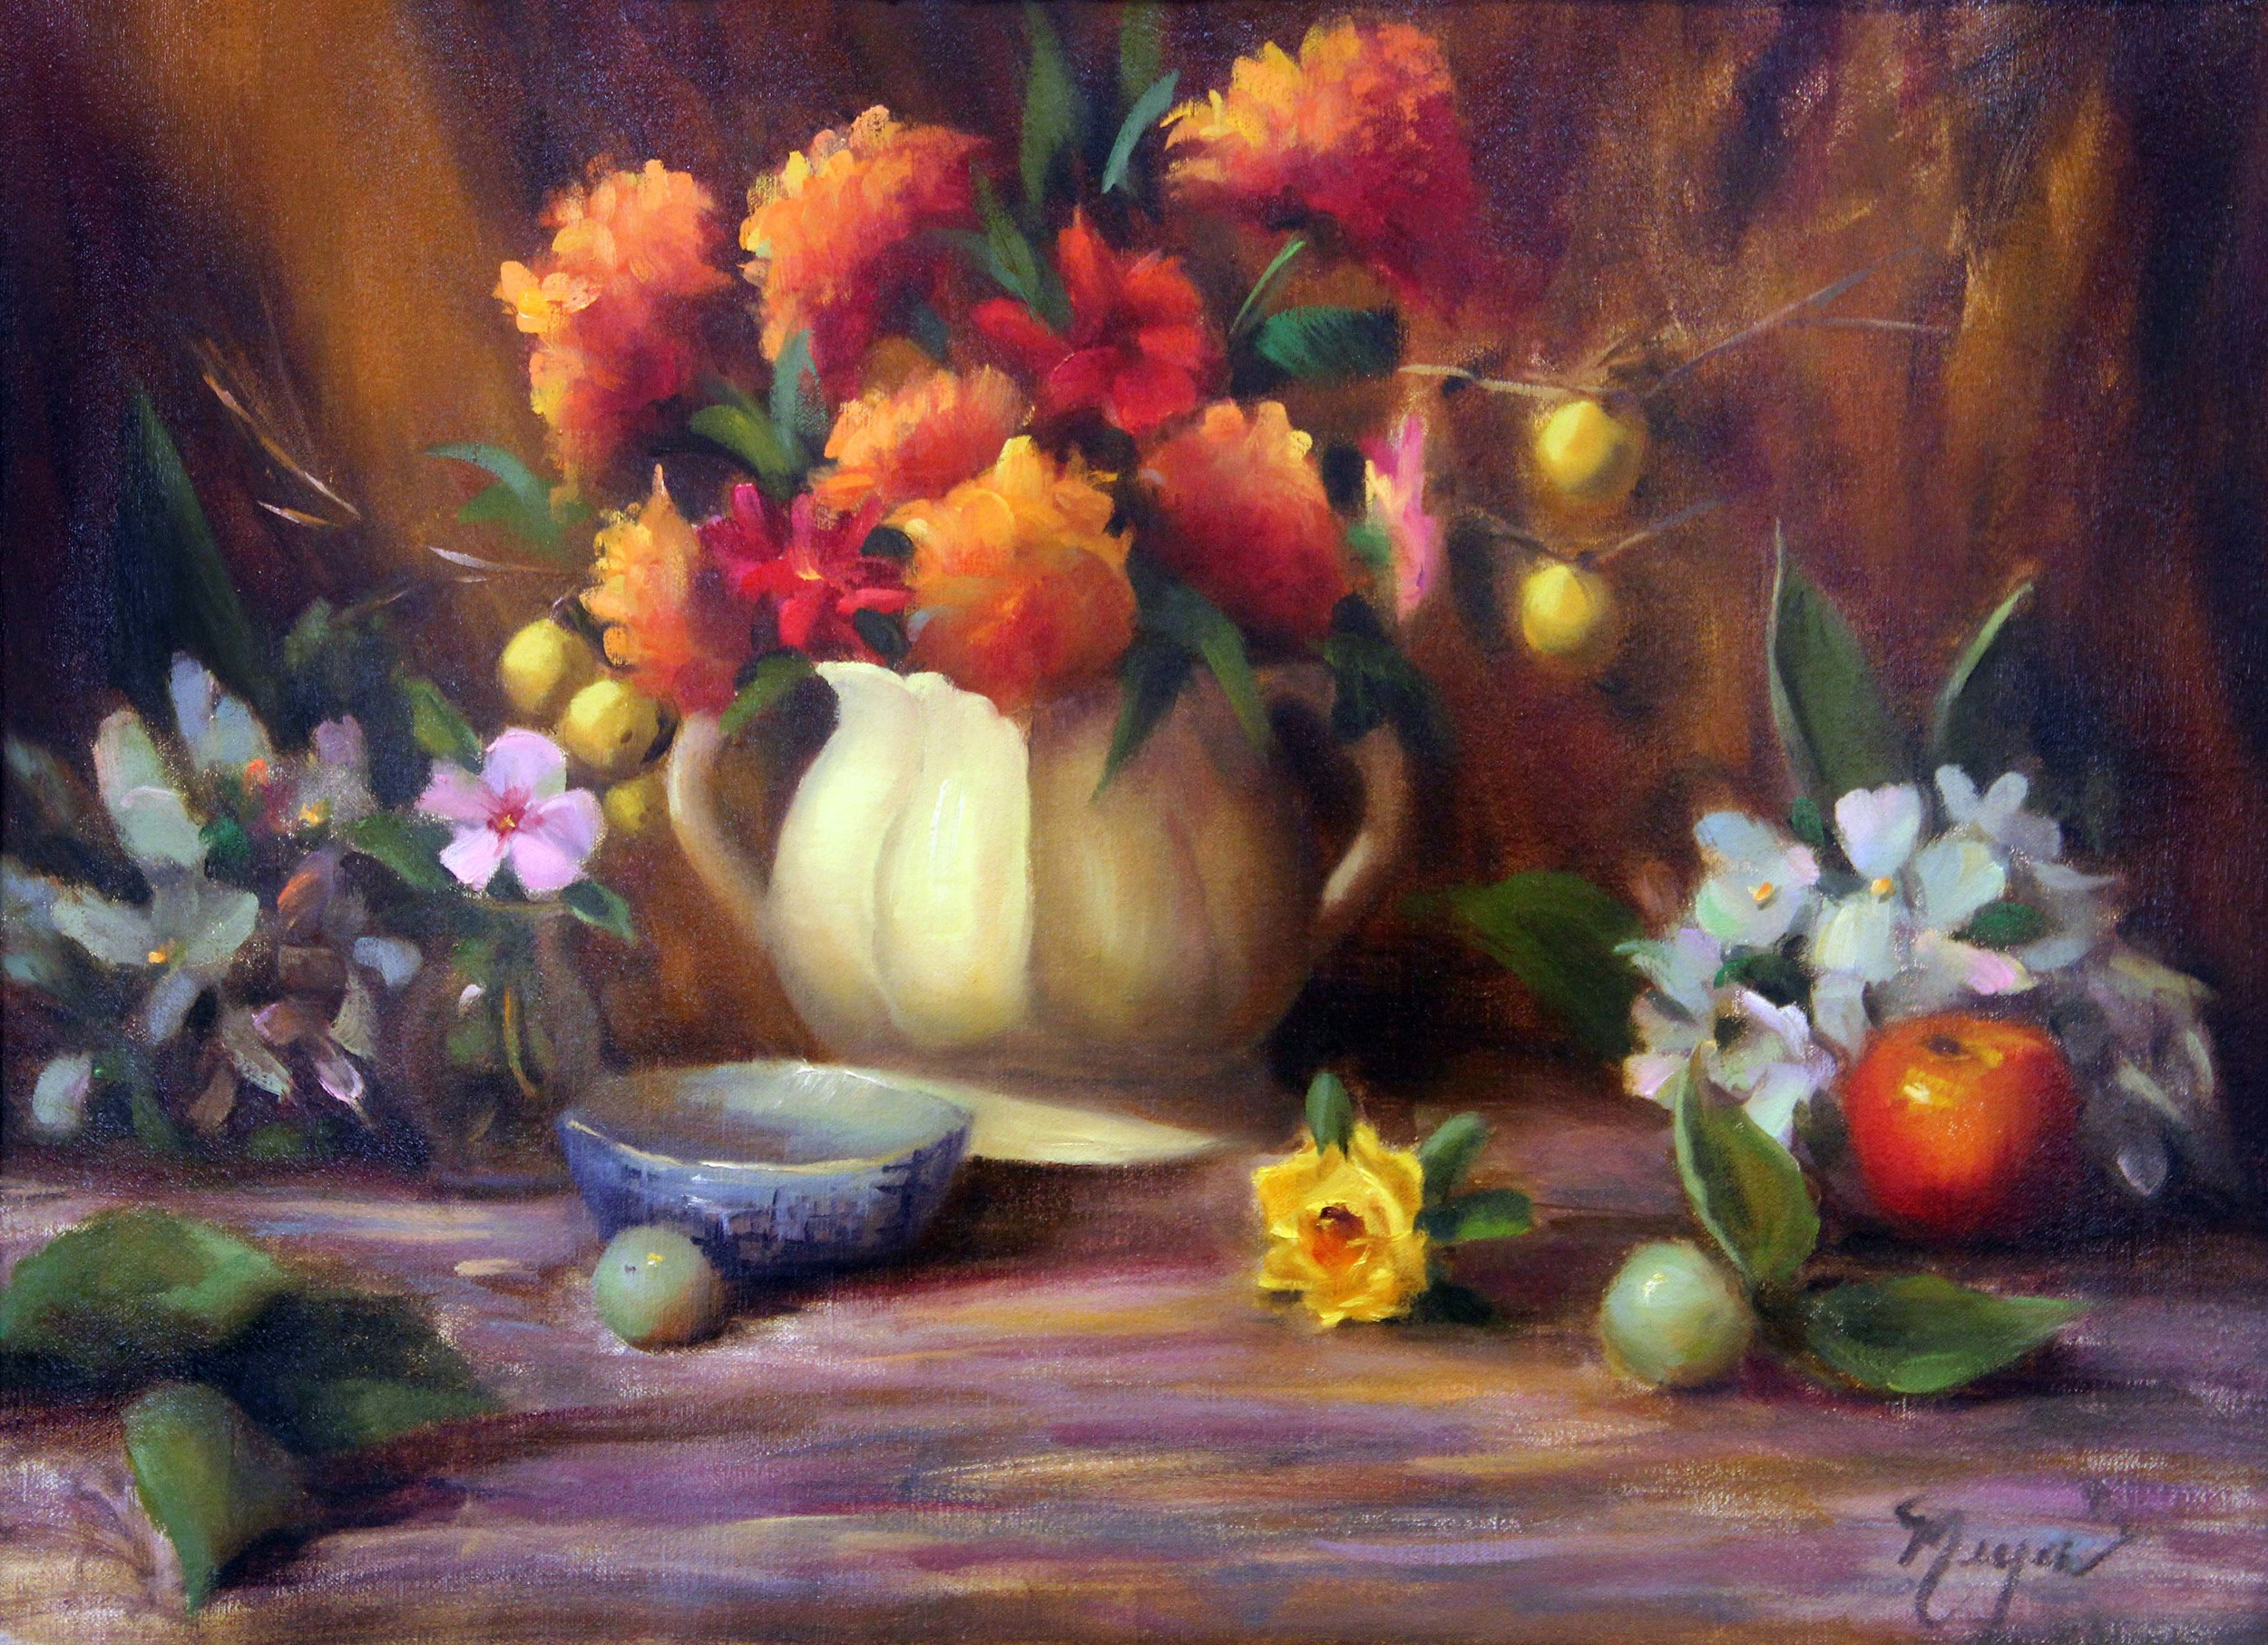 Pat Meyer  Anything But a Rose  23X17  Oil